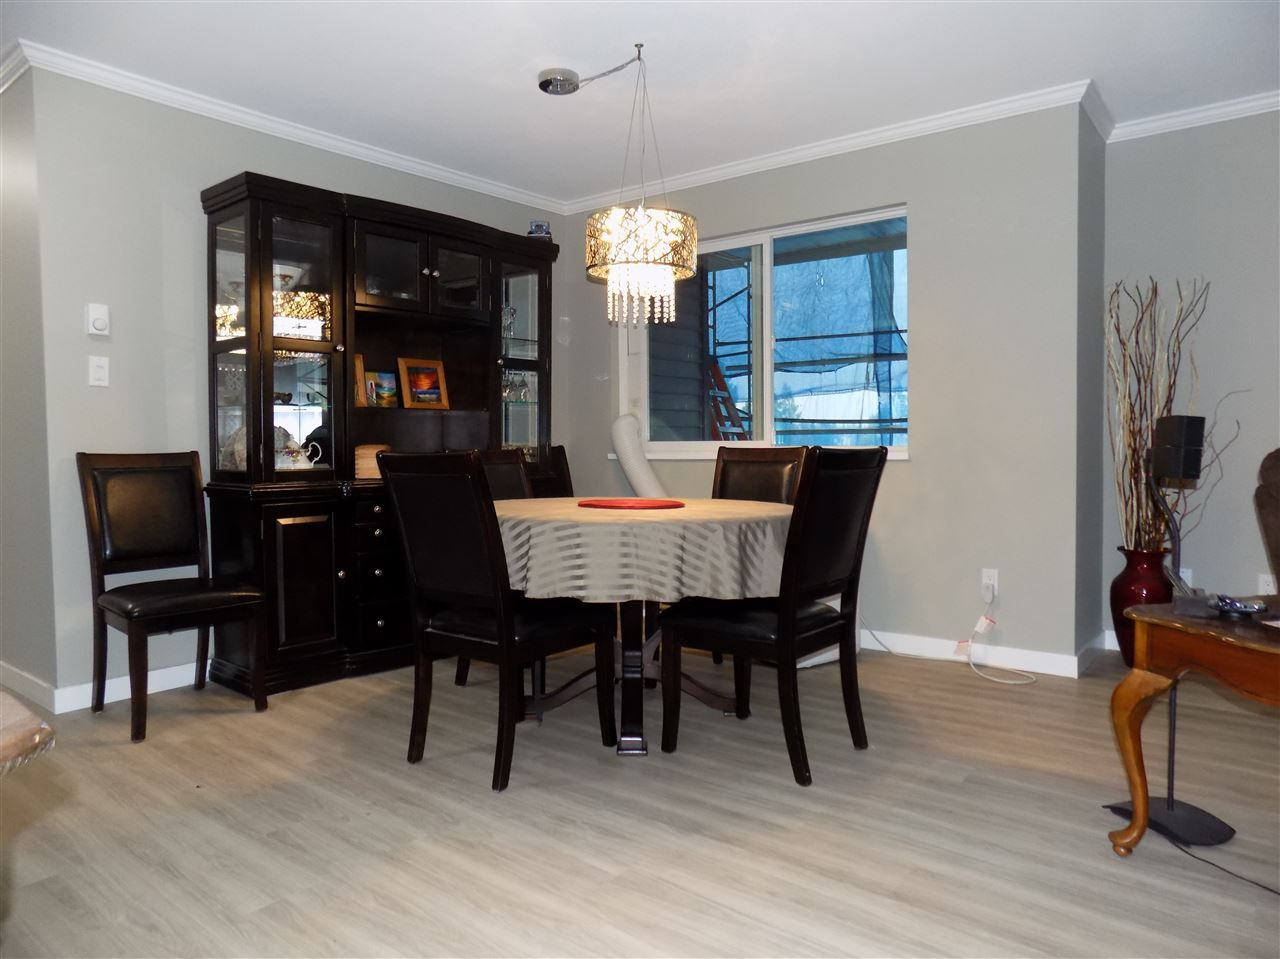 Photo 8: Photos: 311 32044 OLD YALE Road in Abbotsford: Abbotsford West Condo for sale : MLS®# R2331409